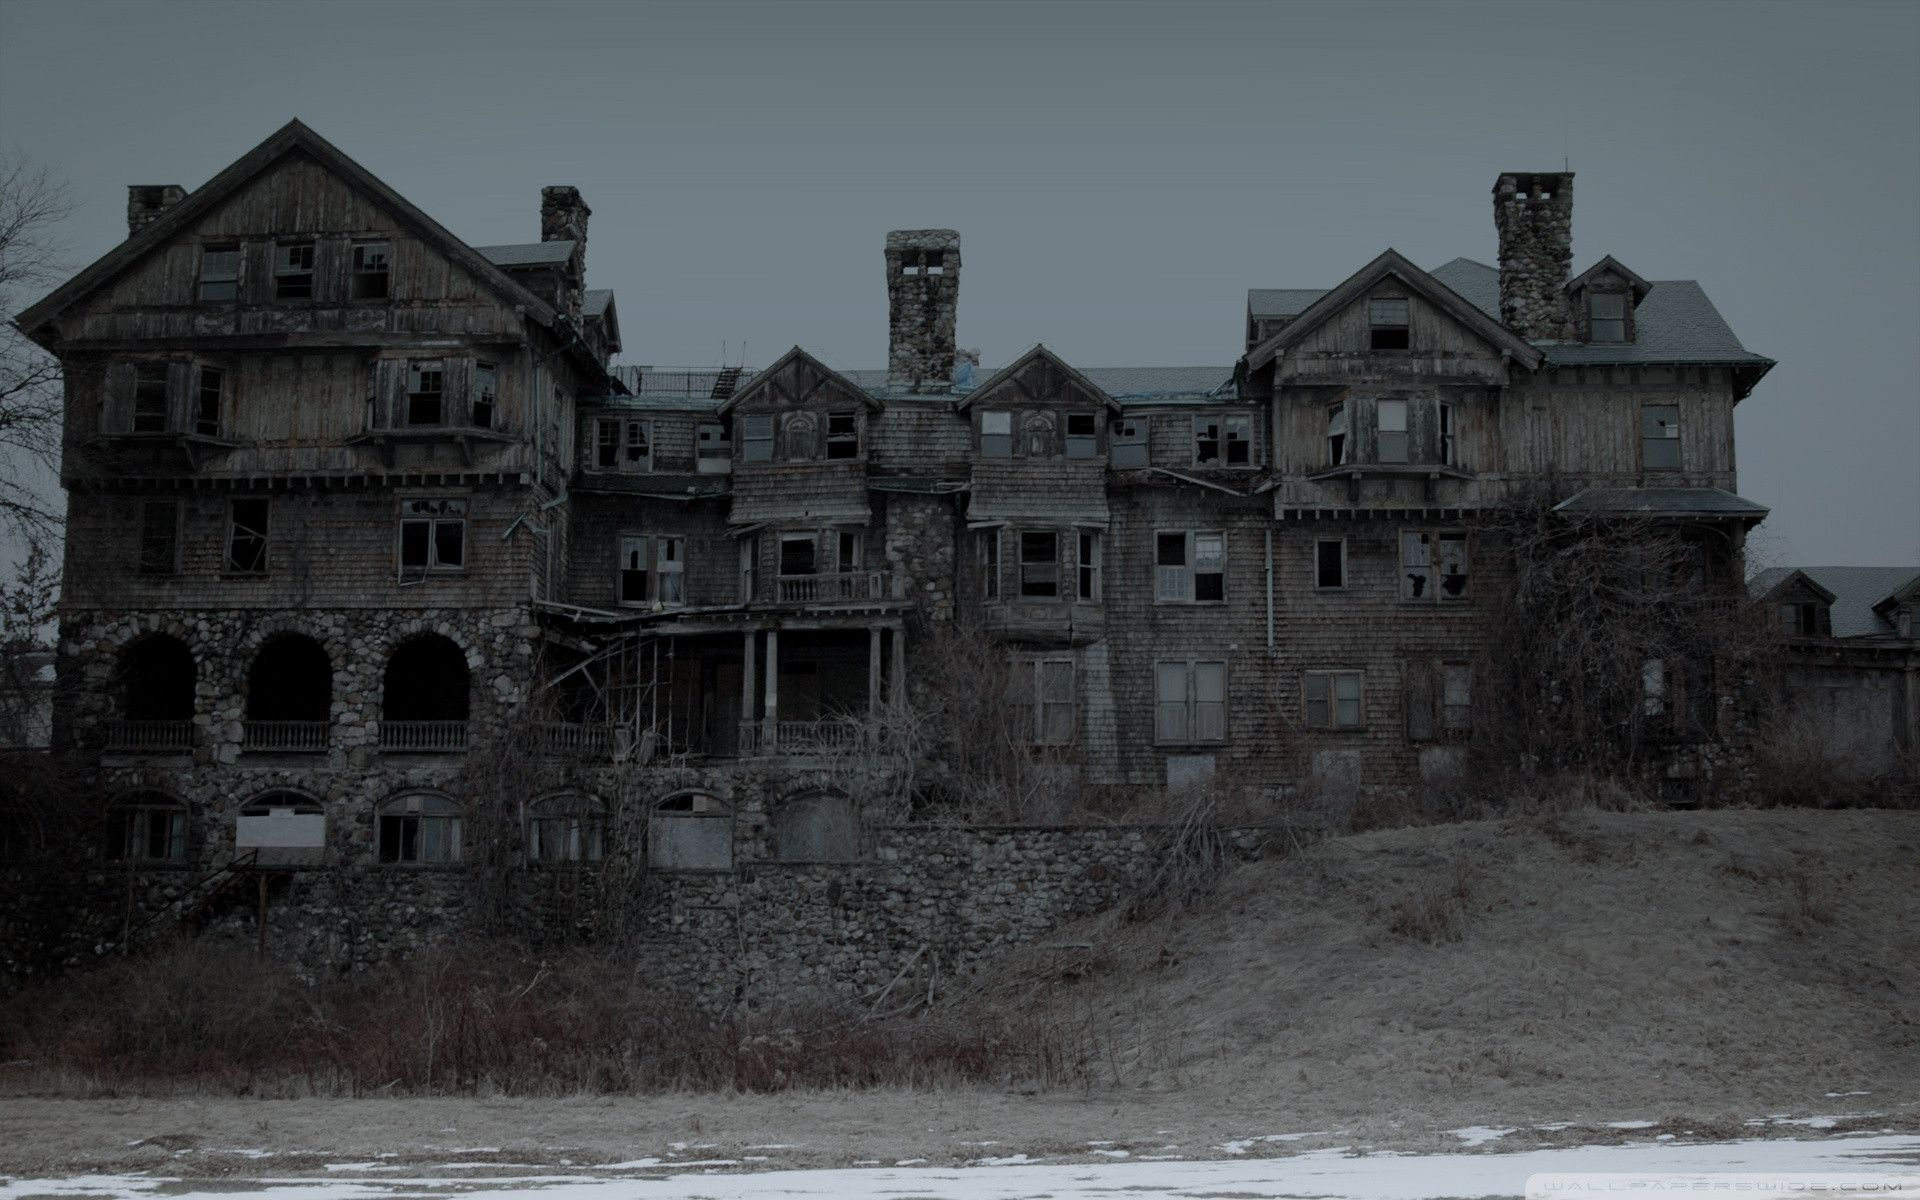 Dilapidated School | Creepy houses, Abandoned houses, Abandoned places